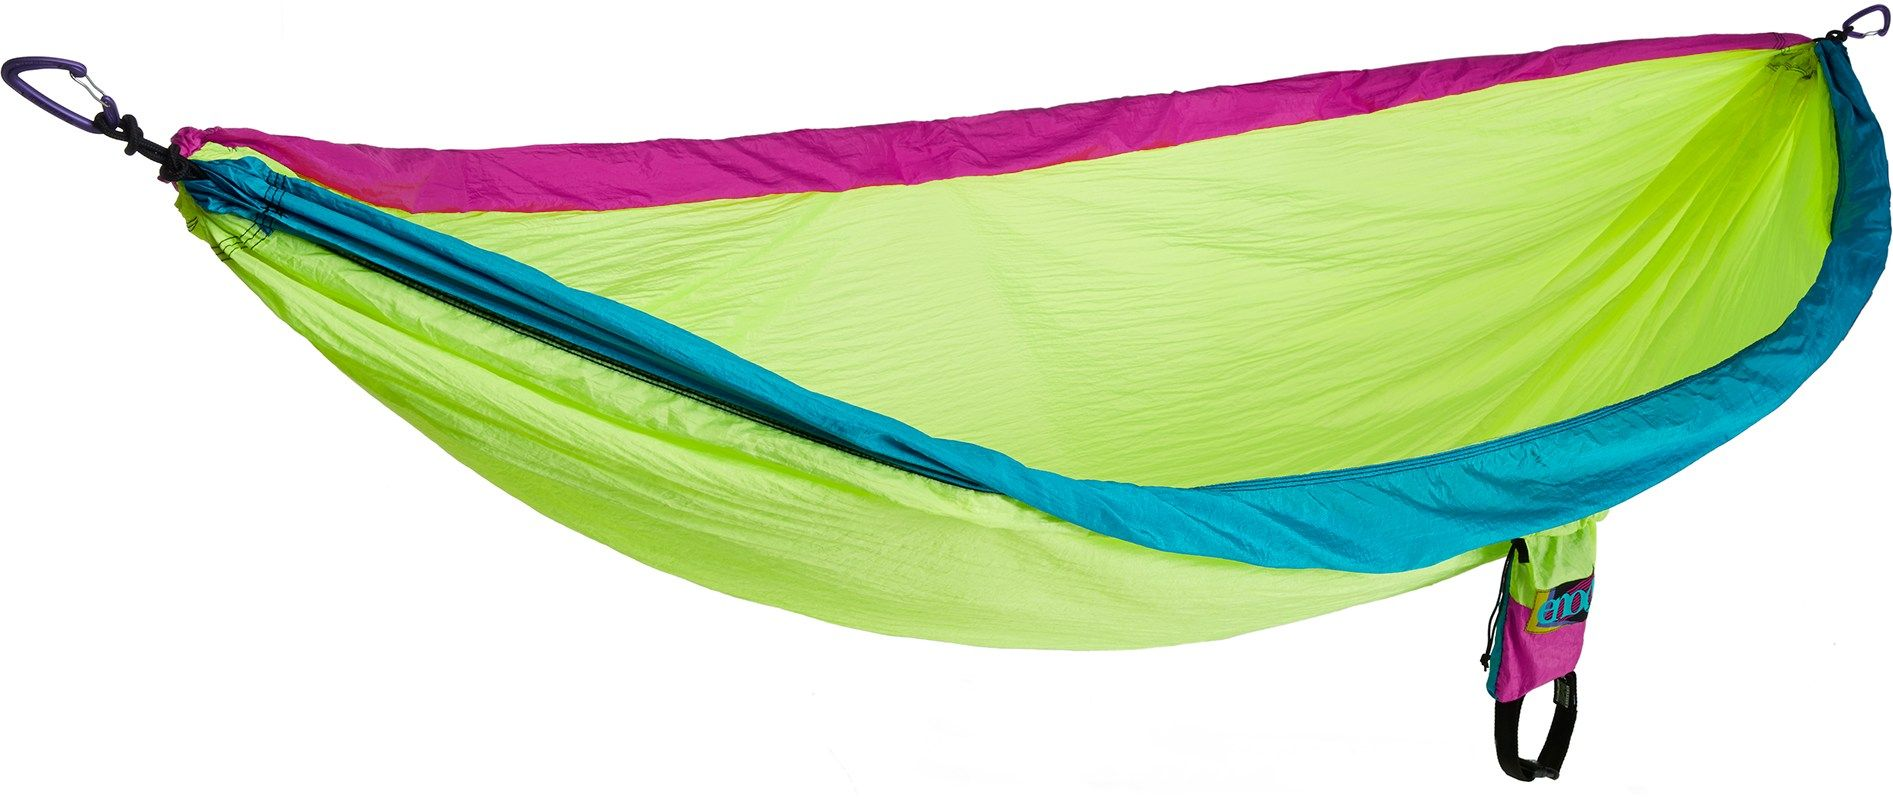 Eno Doublenest Hammock Red Charcoal